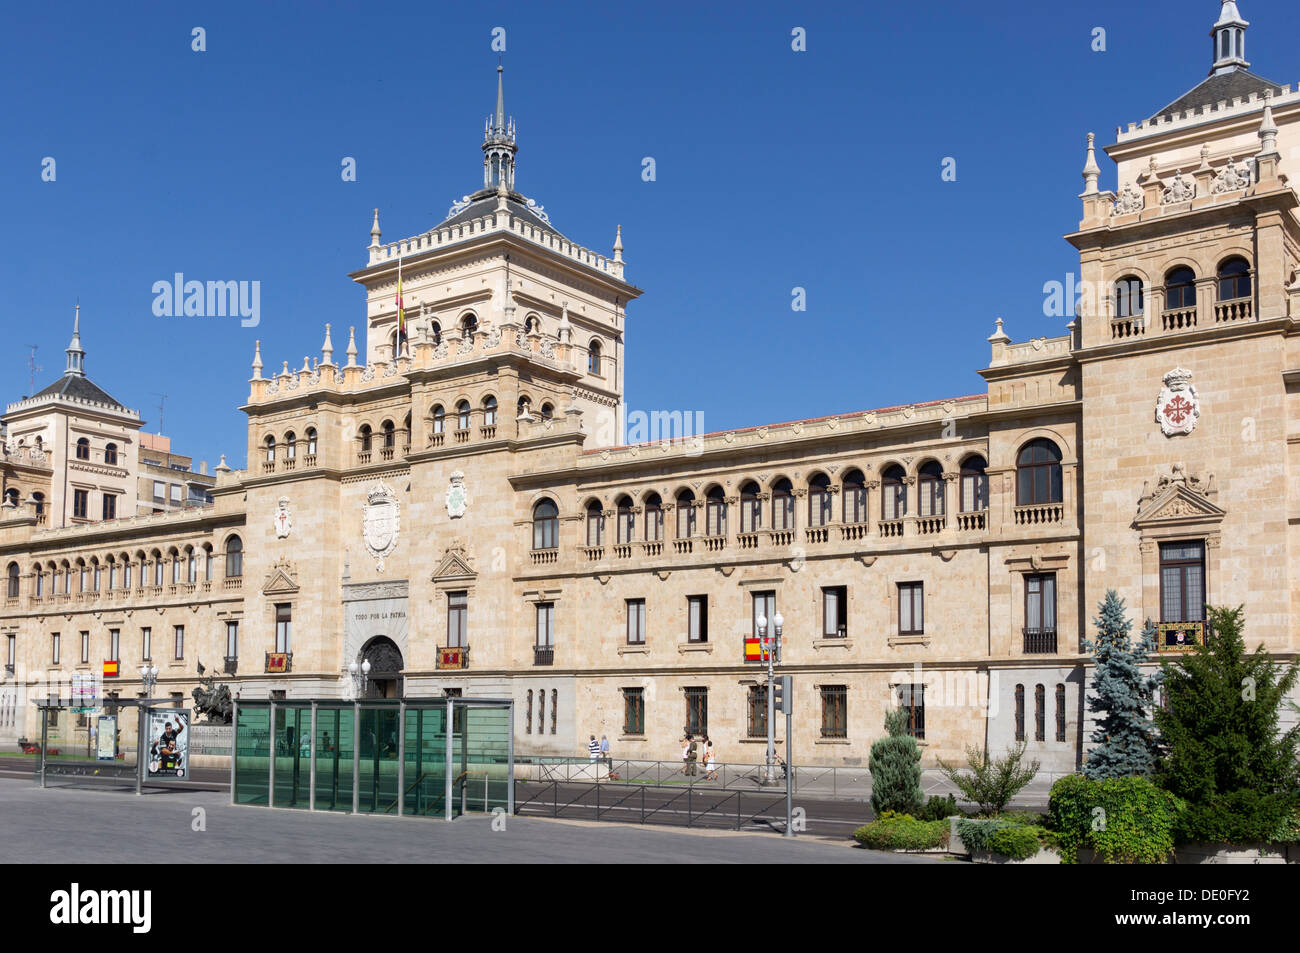 Historicist building of the Academy of Cavalry. - Stock Image